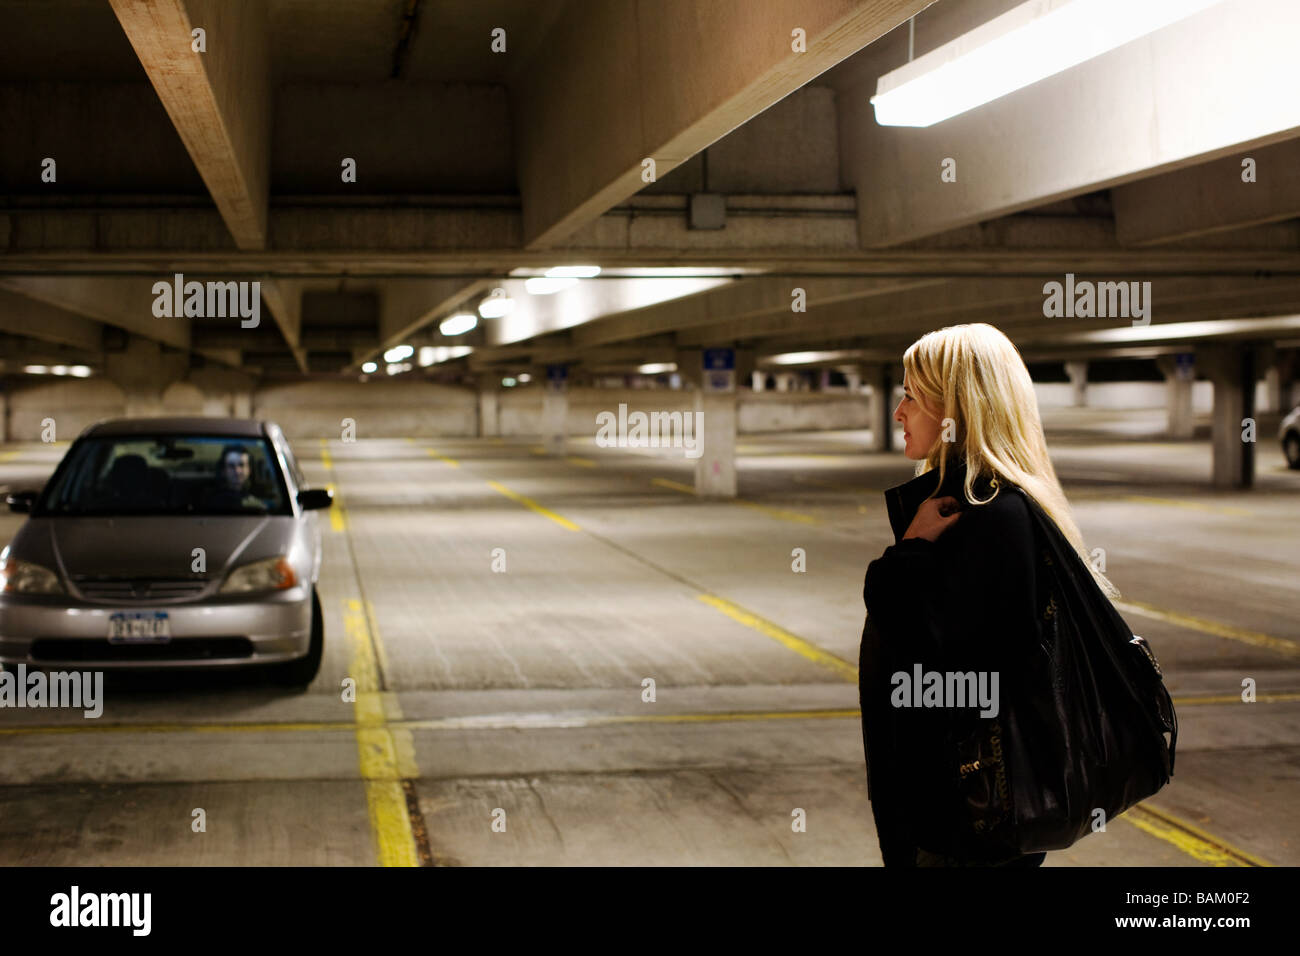 Woman in parking lot - Stock Image